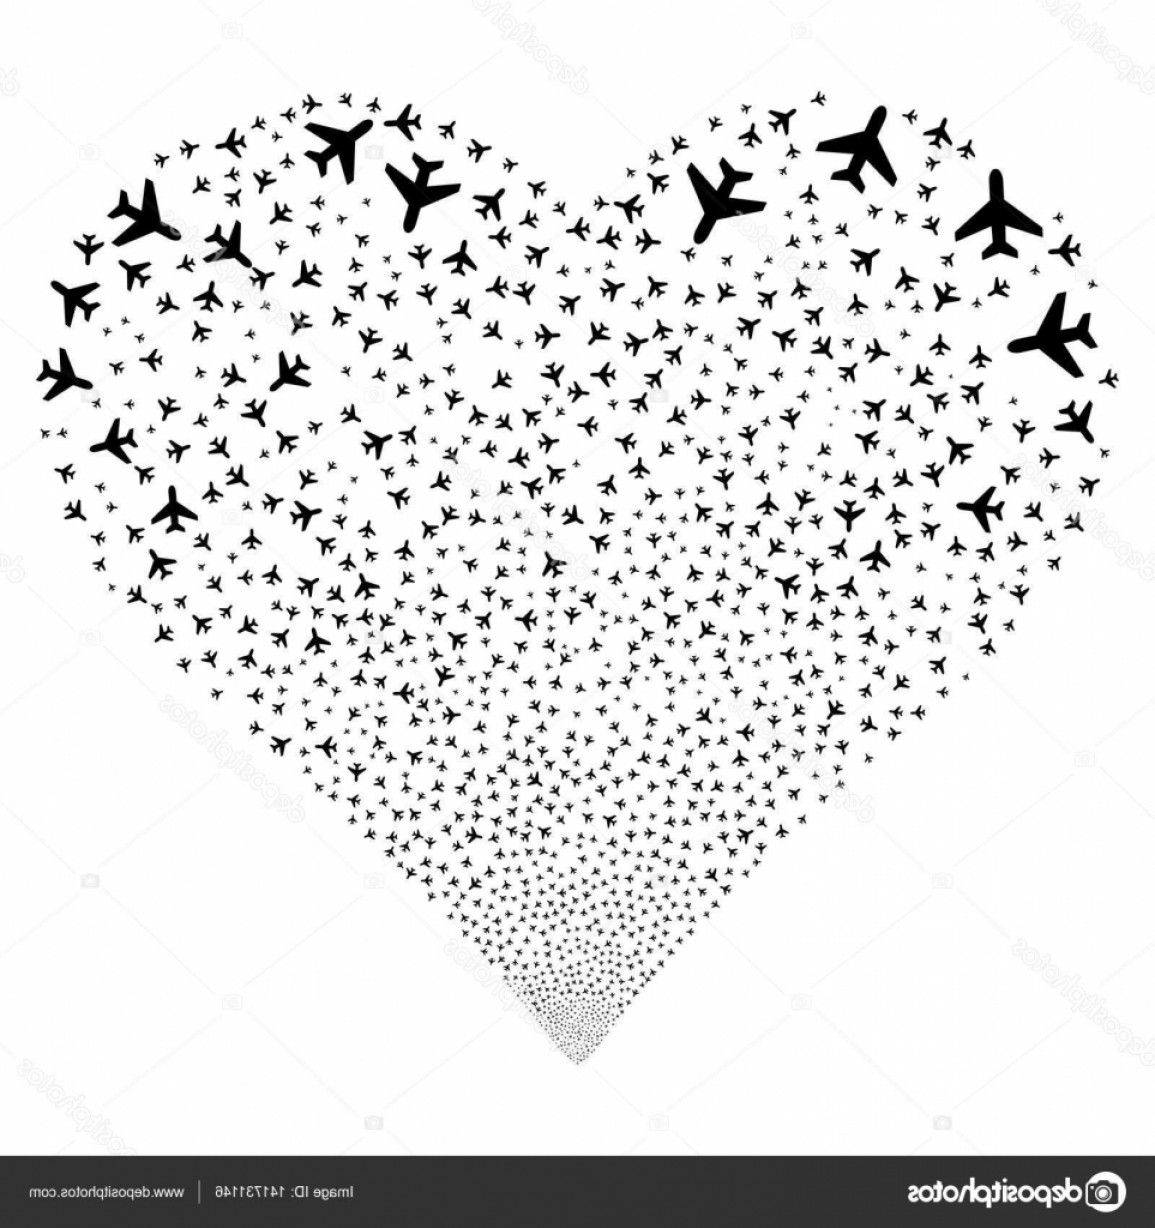 Black Heart And Plane Vector: Stock Illustration Air Plane Fireworks Heart